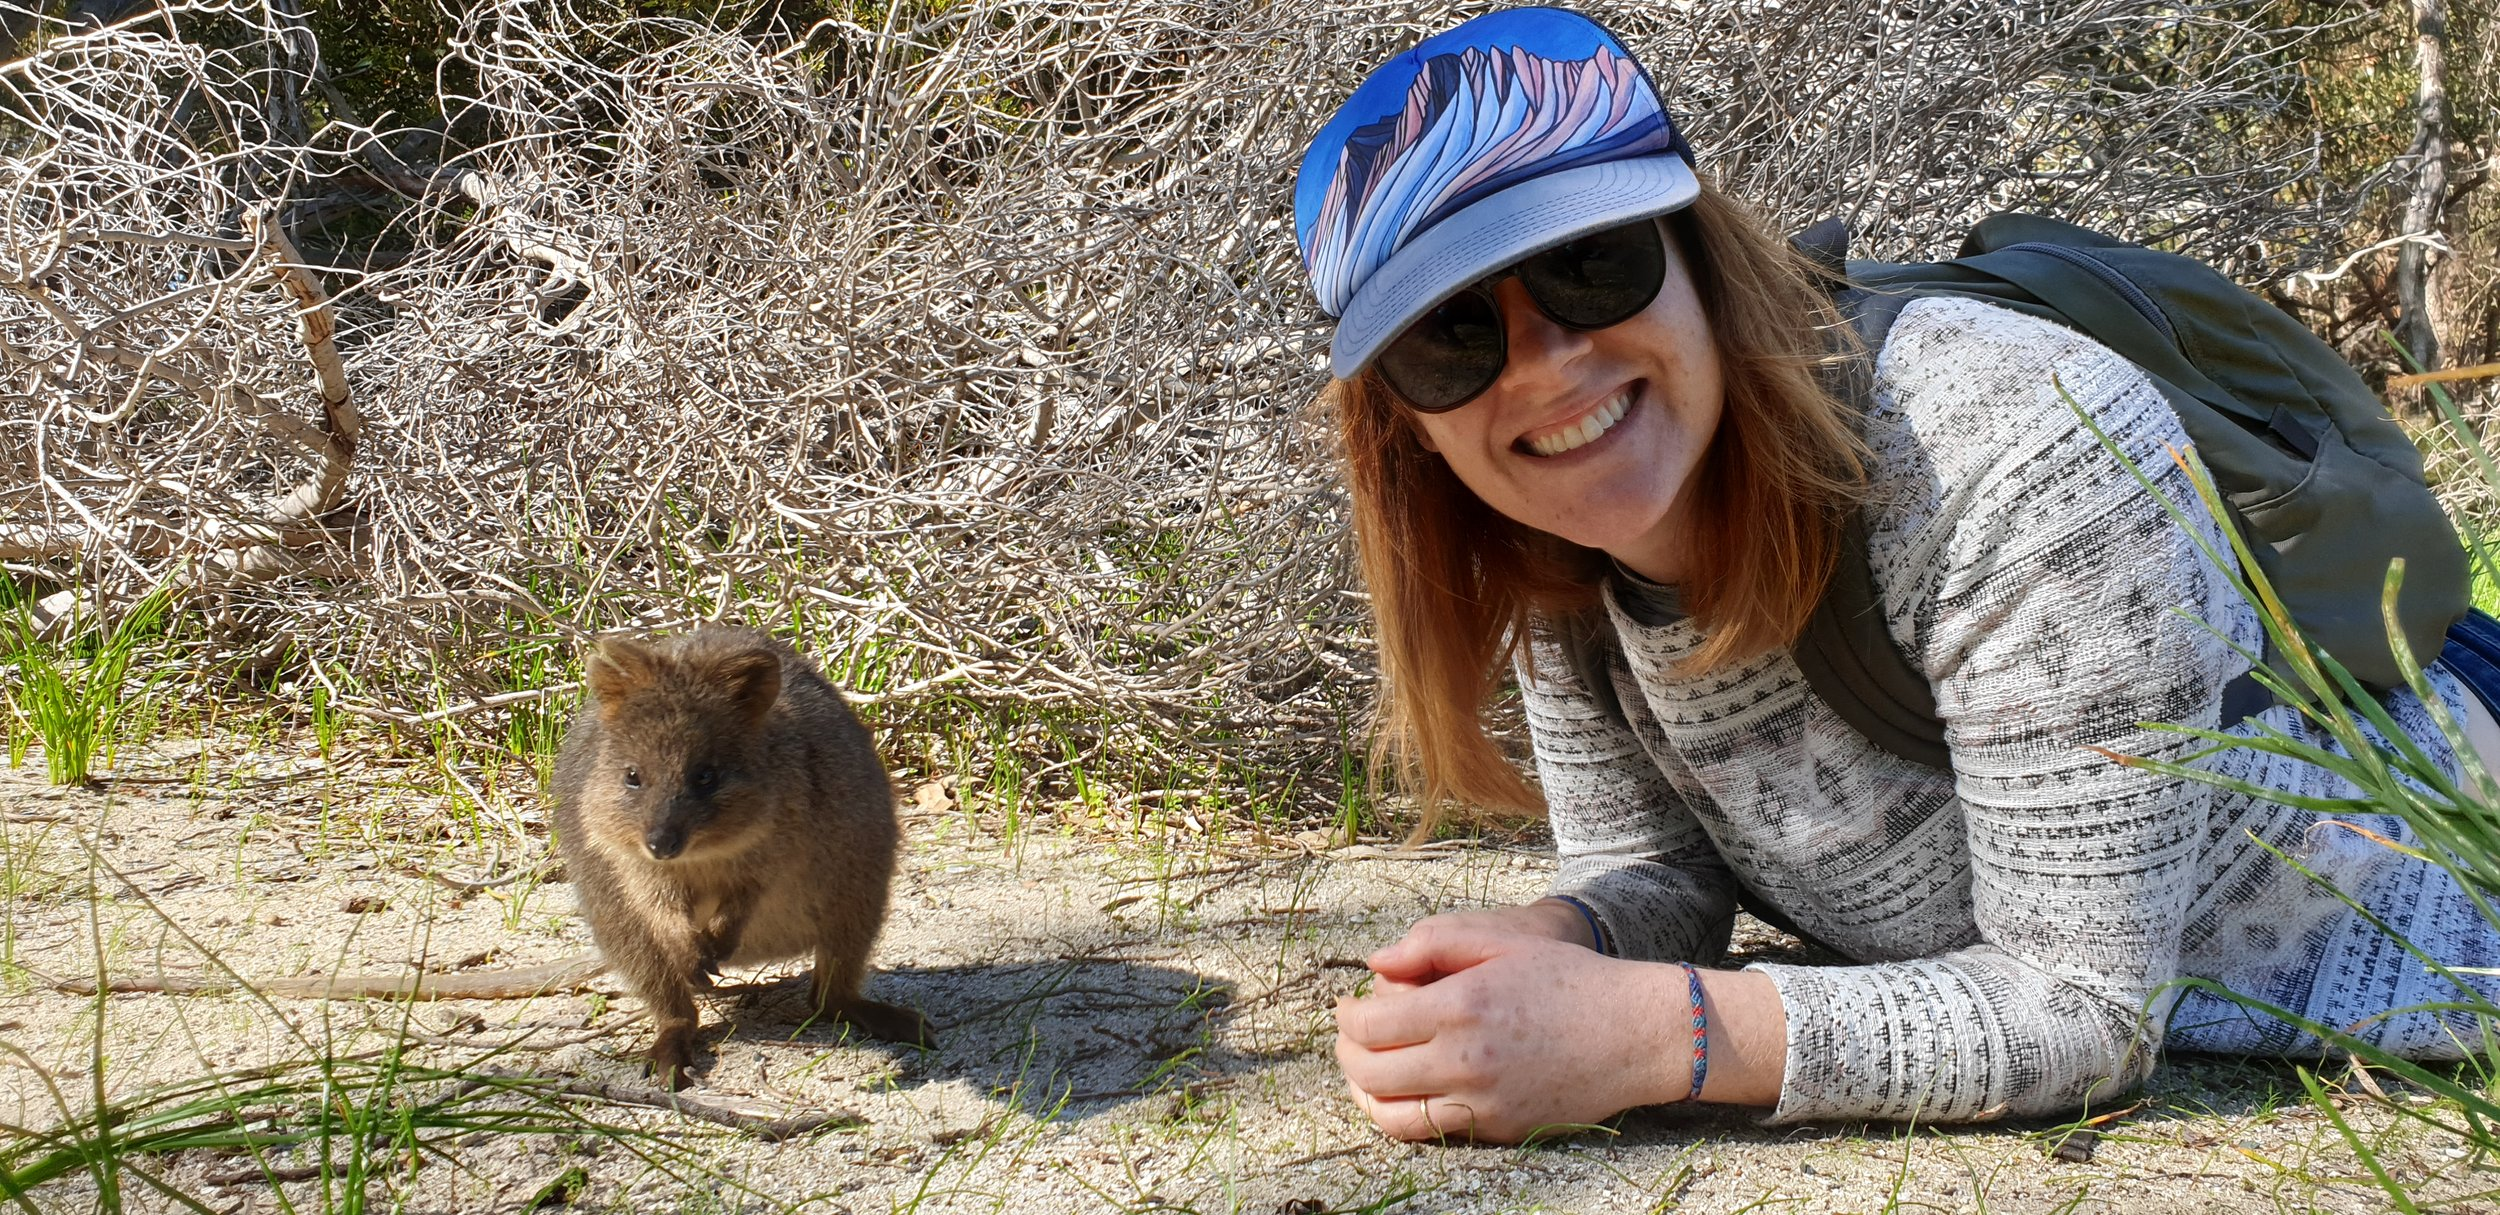 And we may have gotten a quick chance to visit Rottnest Island to visit some quokkas (pictured Dr. Natalie Jones)